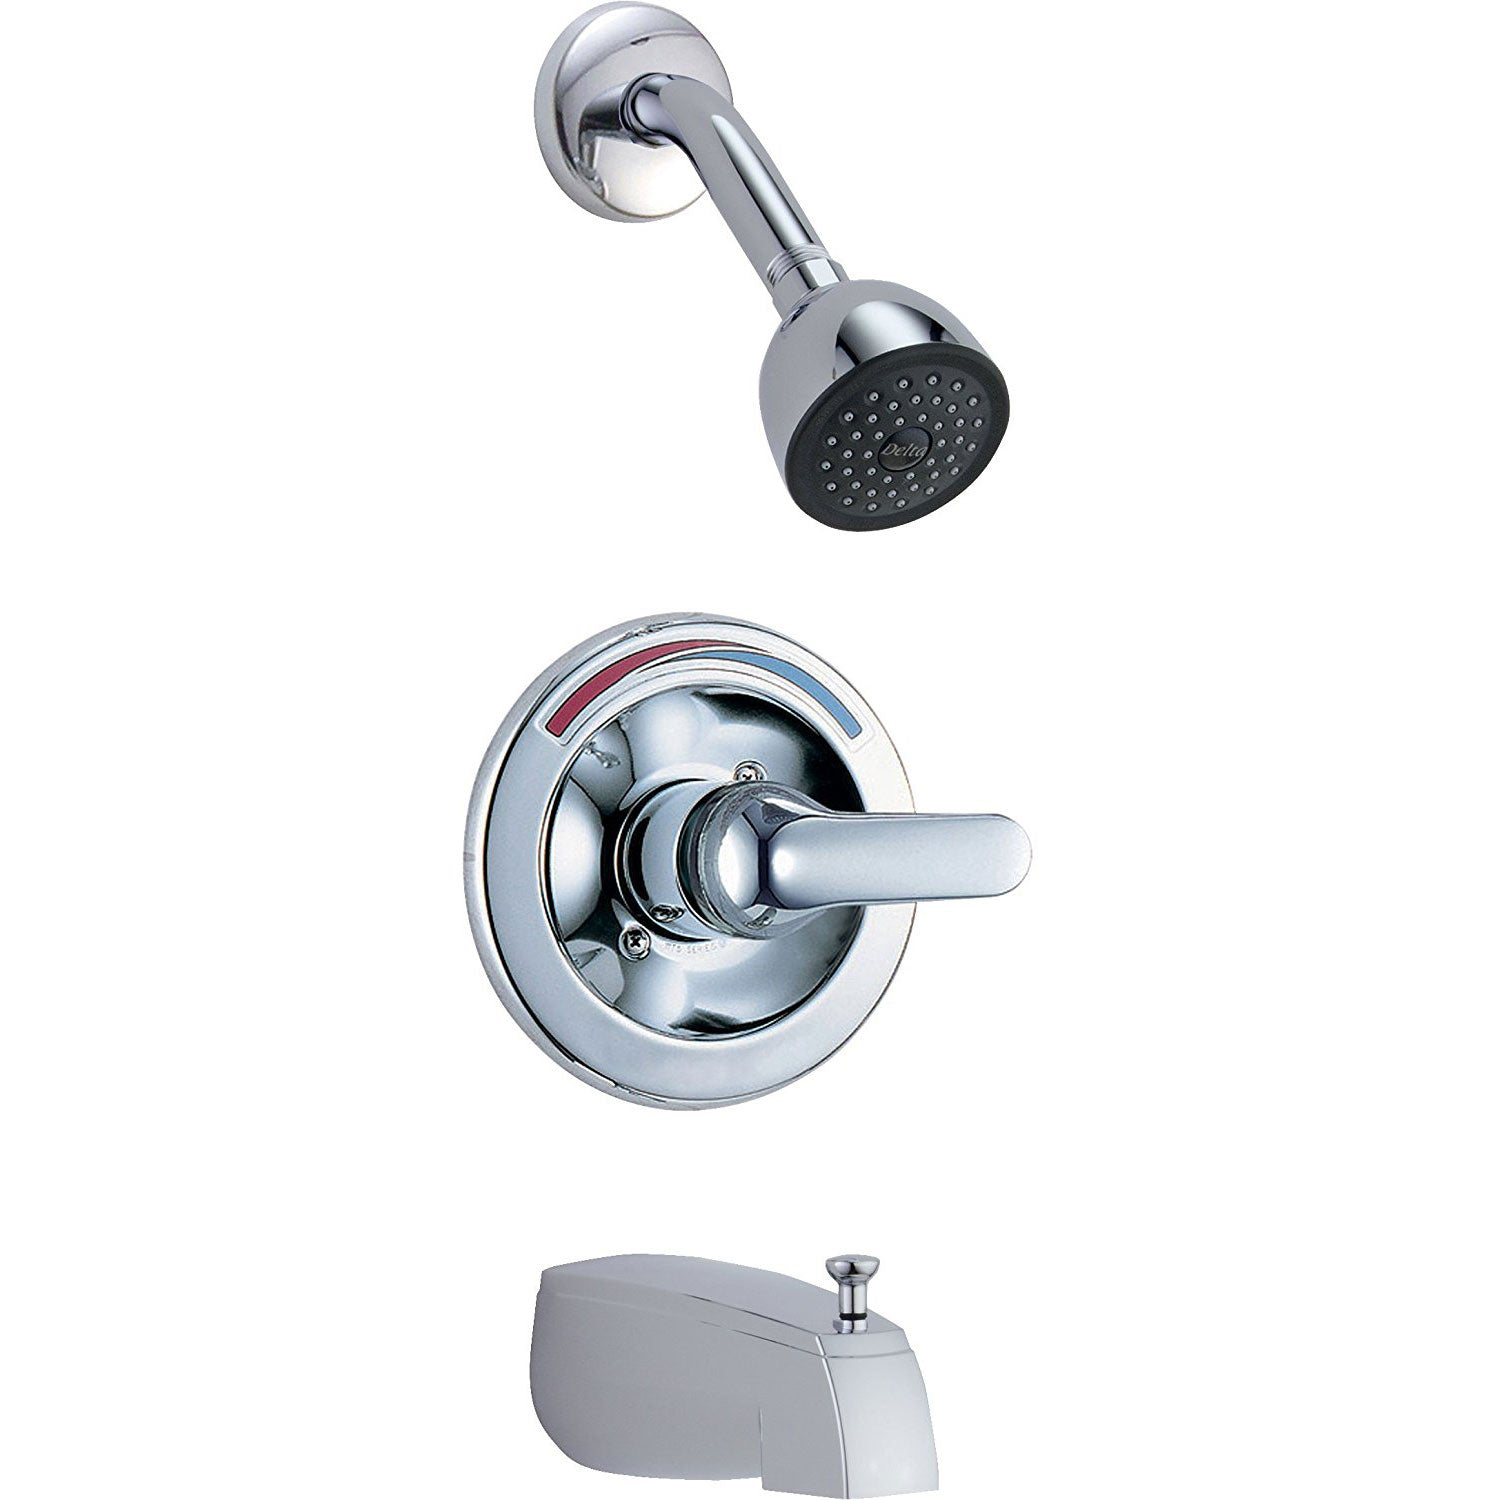 Delta Chrome Finish Monitor 13 Series Classic Style Tub and Shower Faucet Combination Trim Kit (Valve Sold Separately) DT13491